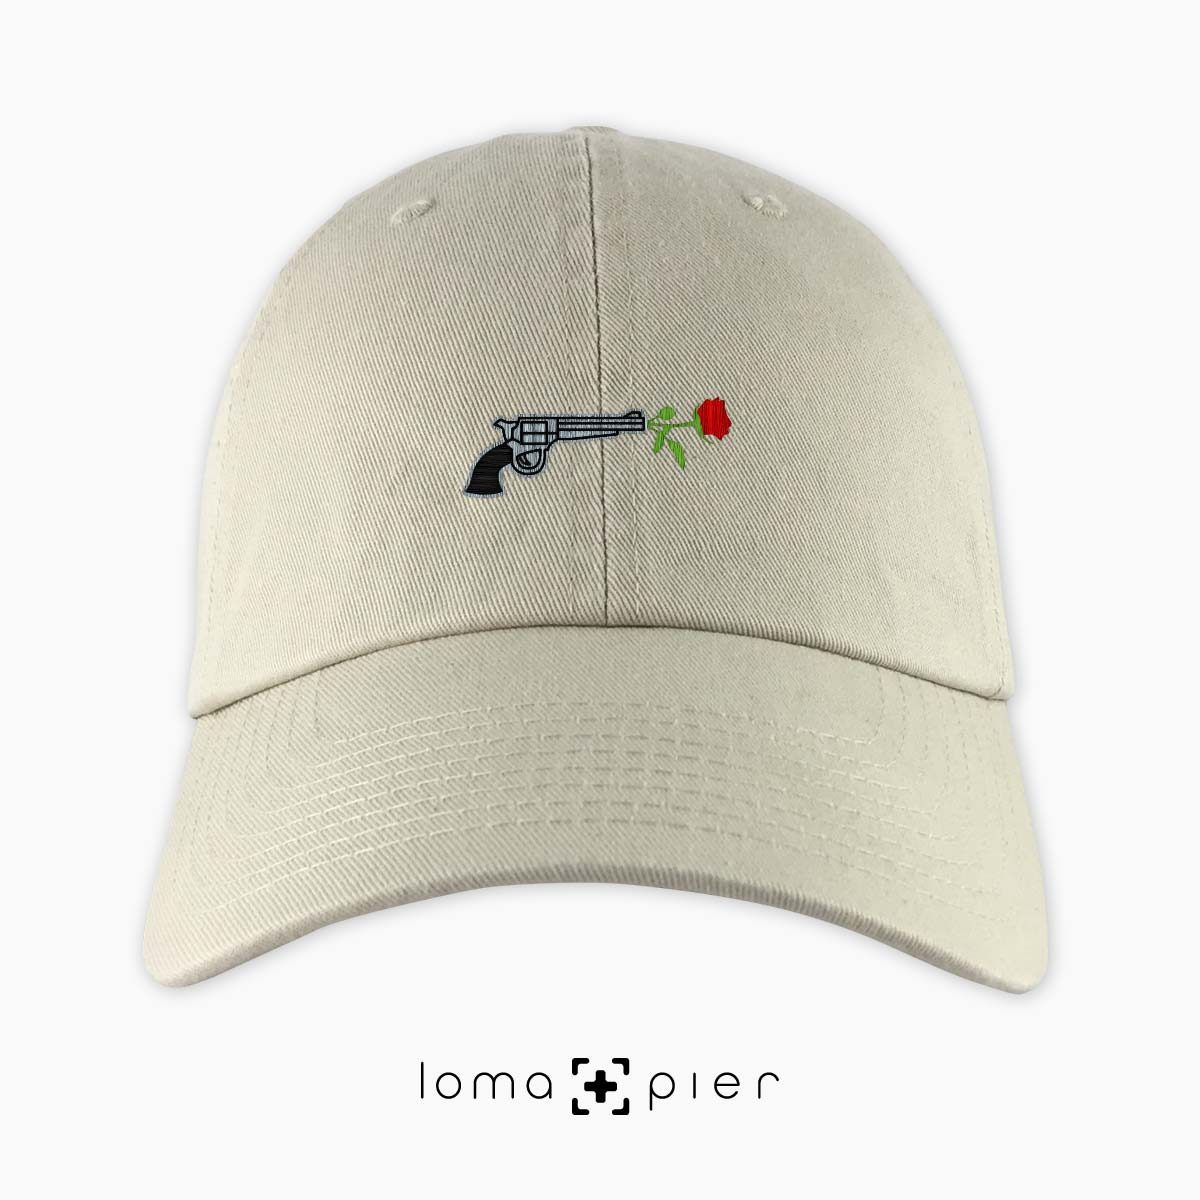 ROSE REVOLVER icon embroidered on a khaki unstructured dad hat with multicolor thread by loma+pier hat store made in the USA